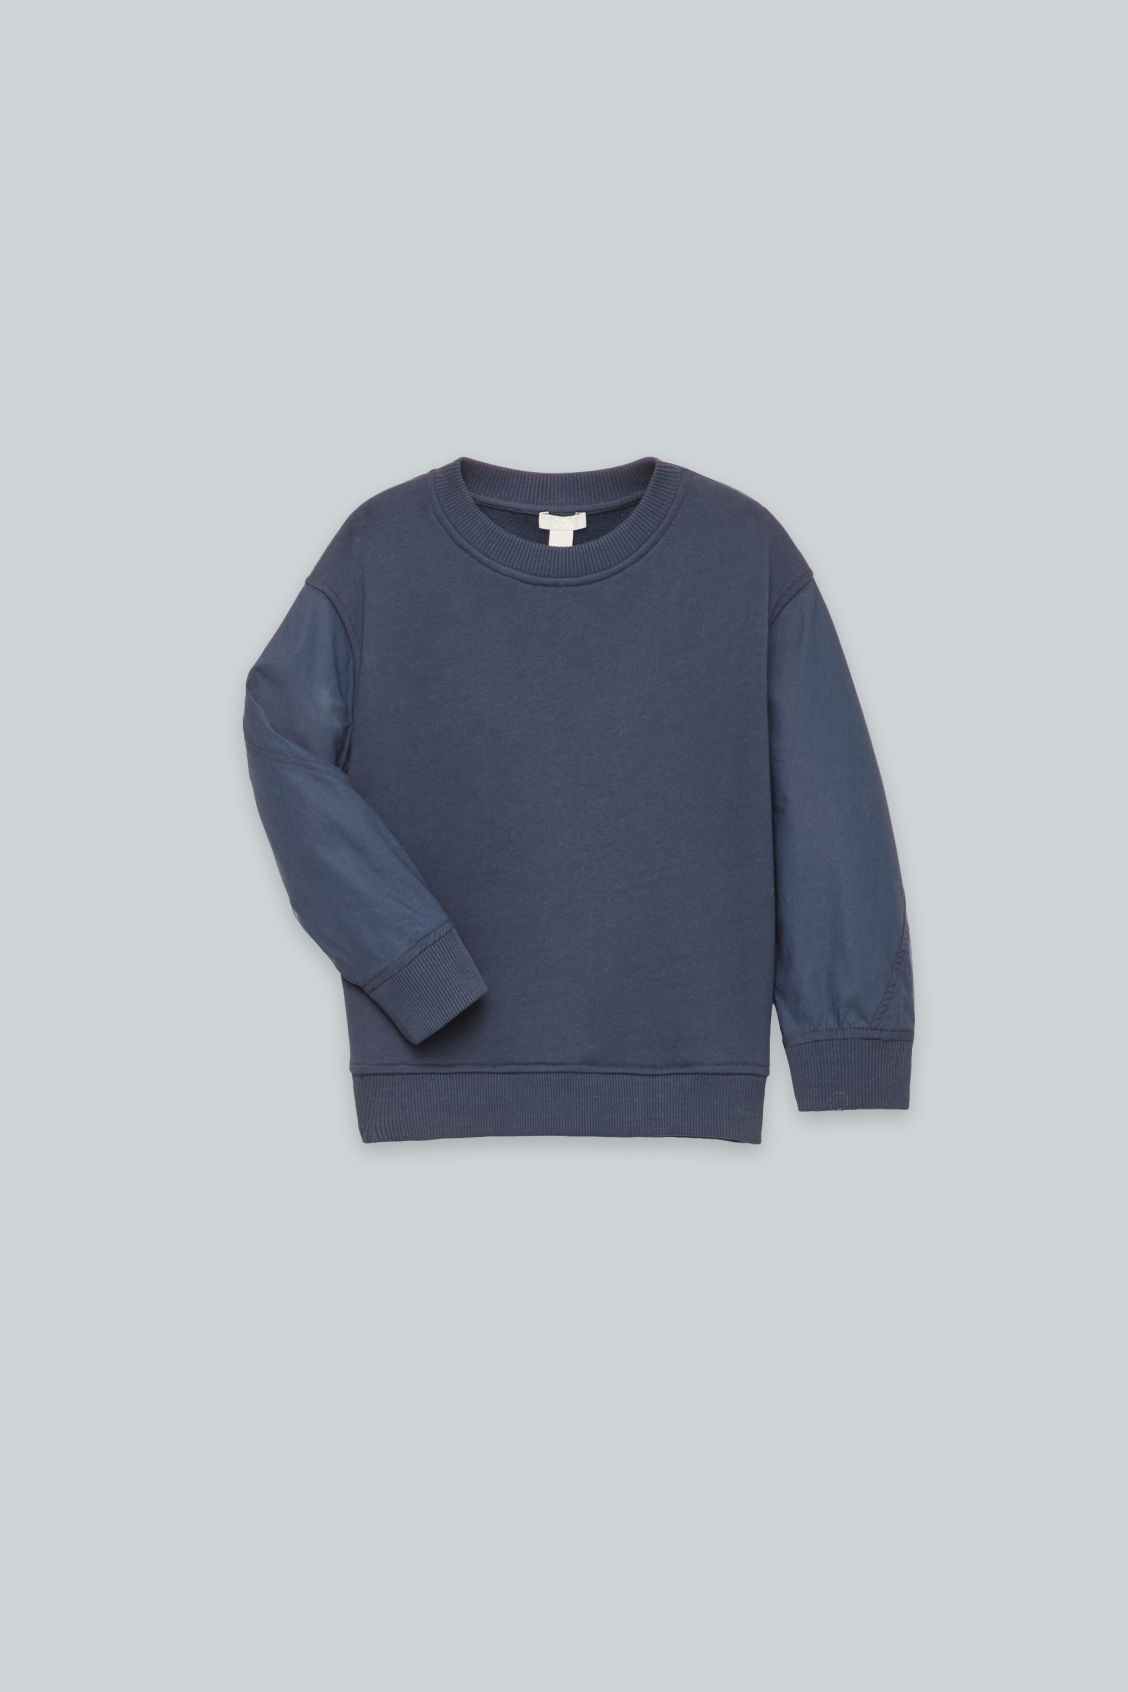 Detailed image of Cos woven-jersey mix jumper in blue